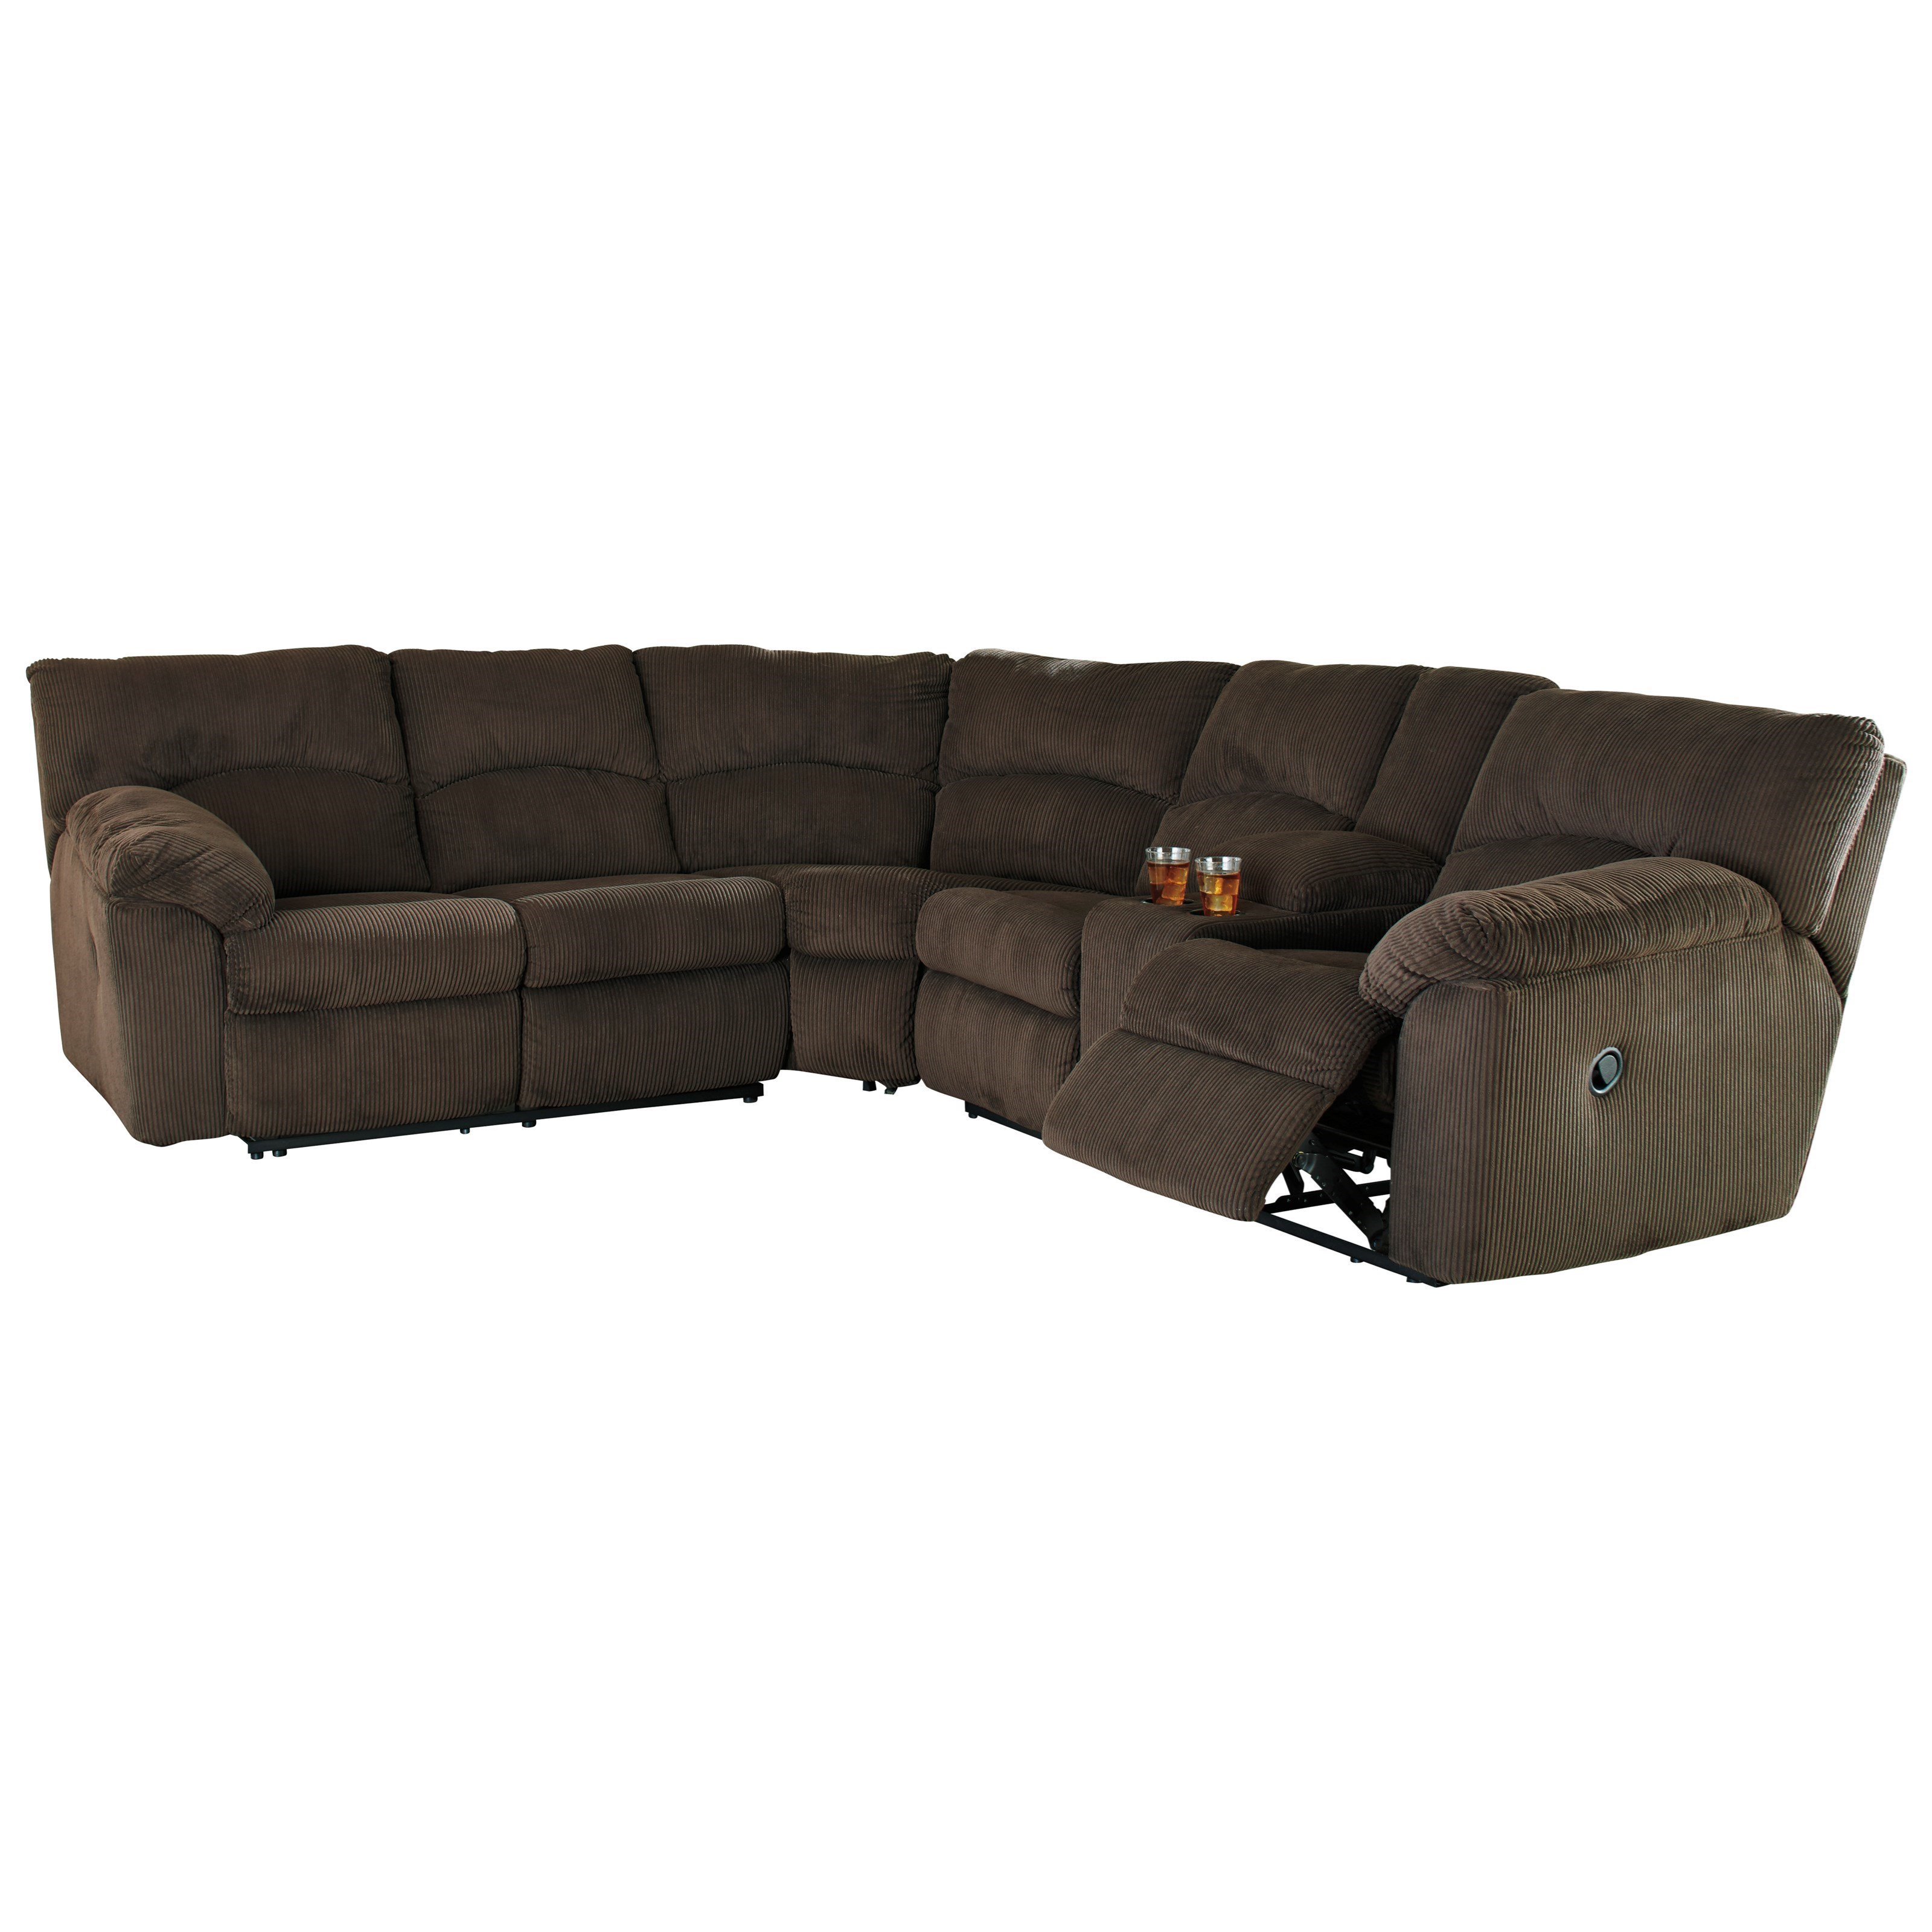 Signature Design by Ashley Hopkinton Reclining Sectional with 2 Cup Holders u0026 Storage Console - Household Furniture - Reclining Sectional Sofas  sc 1 st  Household Furniture : reclining sectional with cup holders - Sectionals, Sofas & Couches